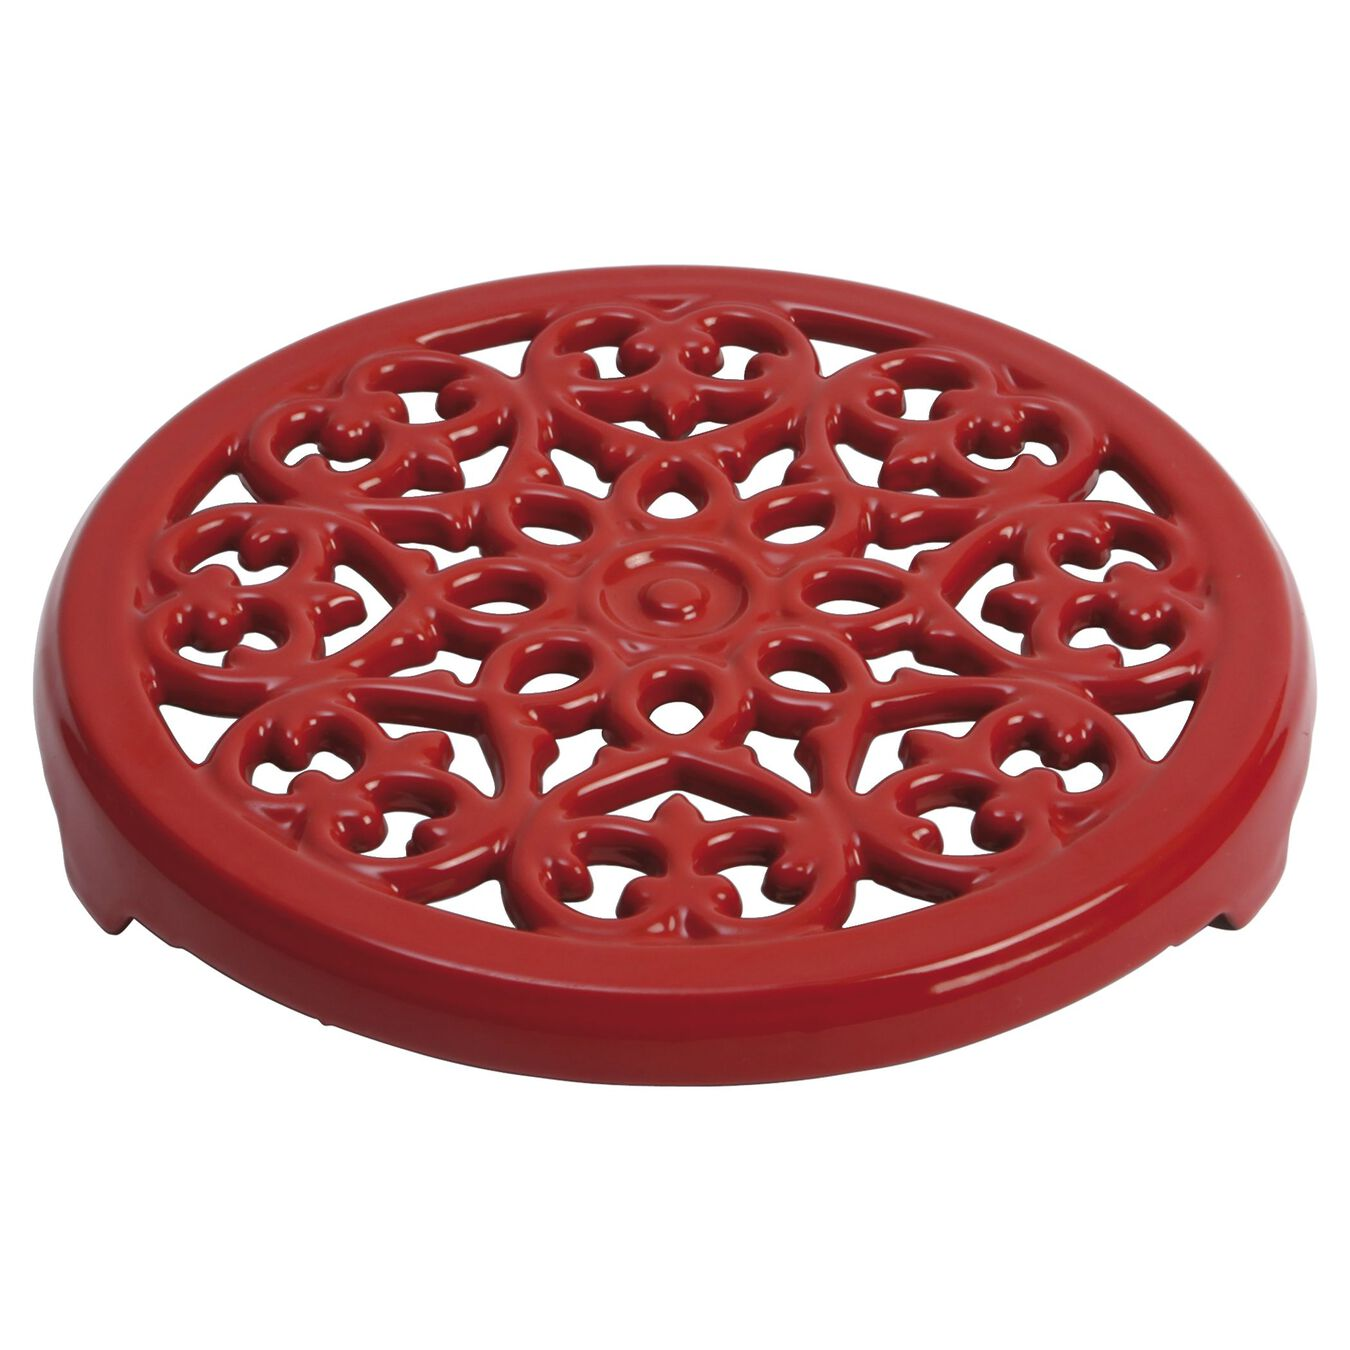 23 cm round Cast iron Trivet, Cherry,,large 1